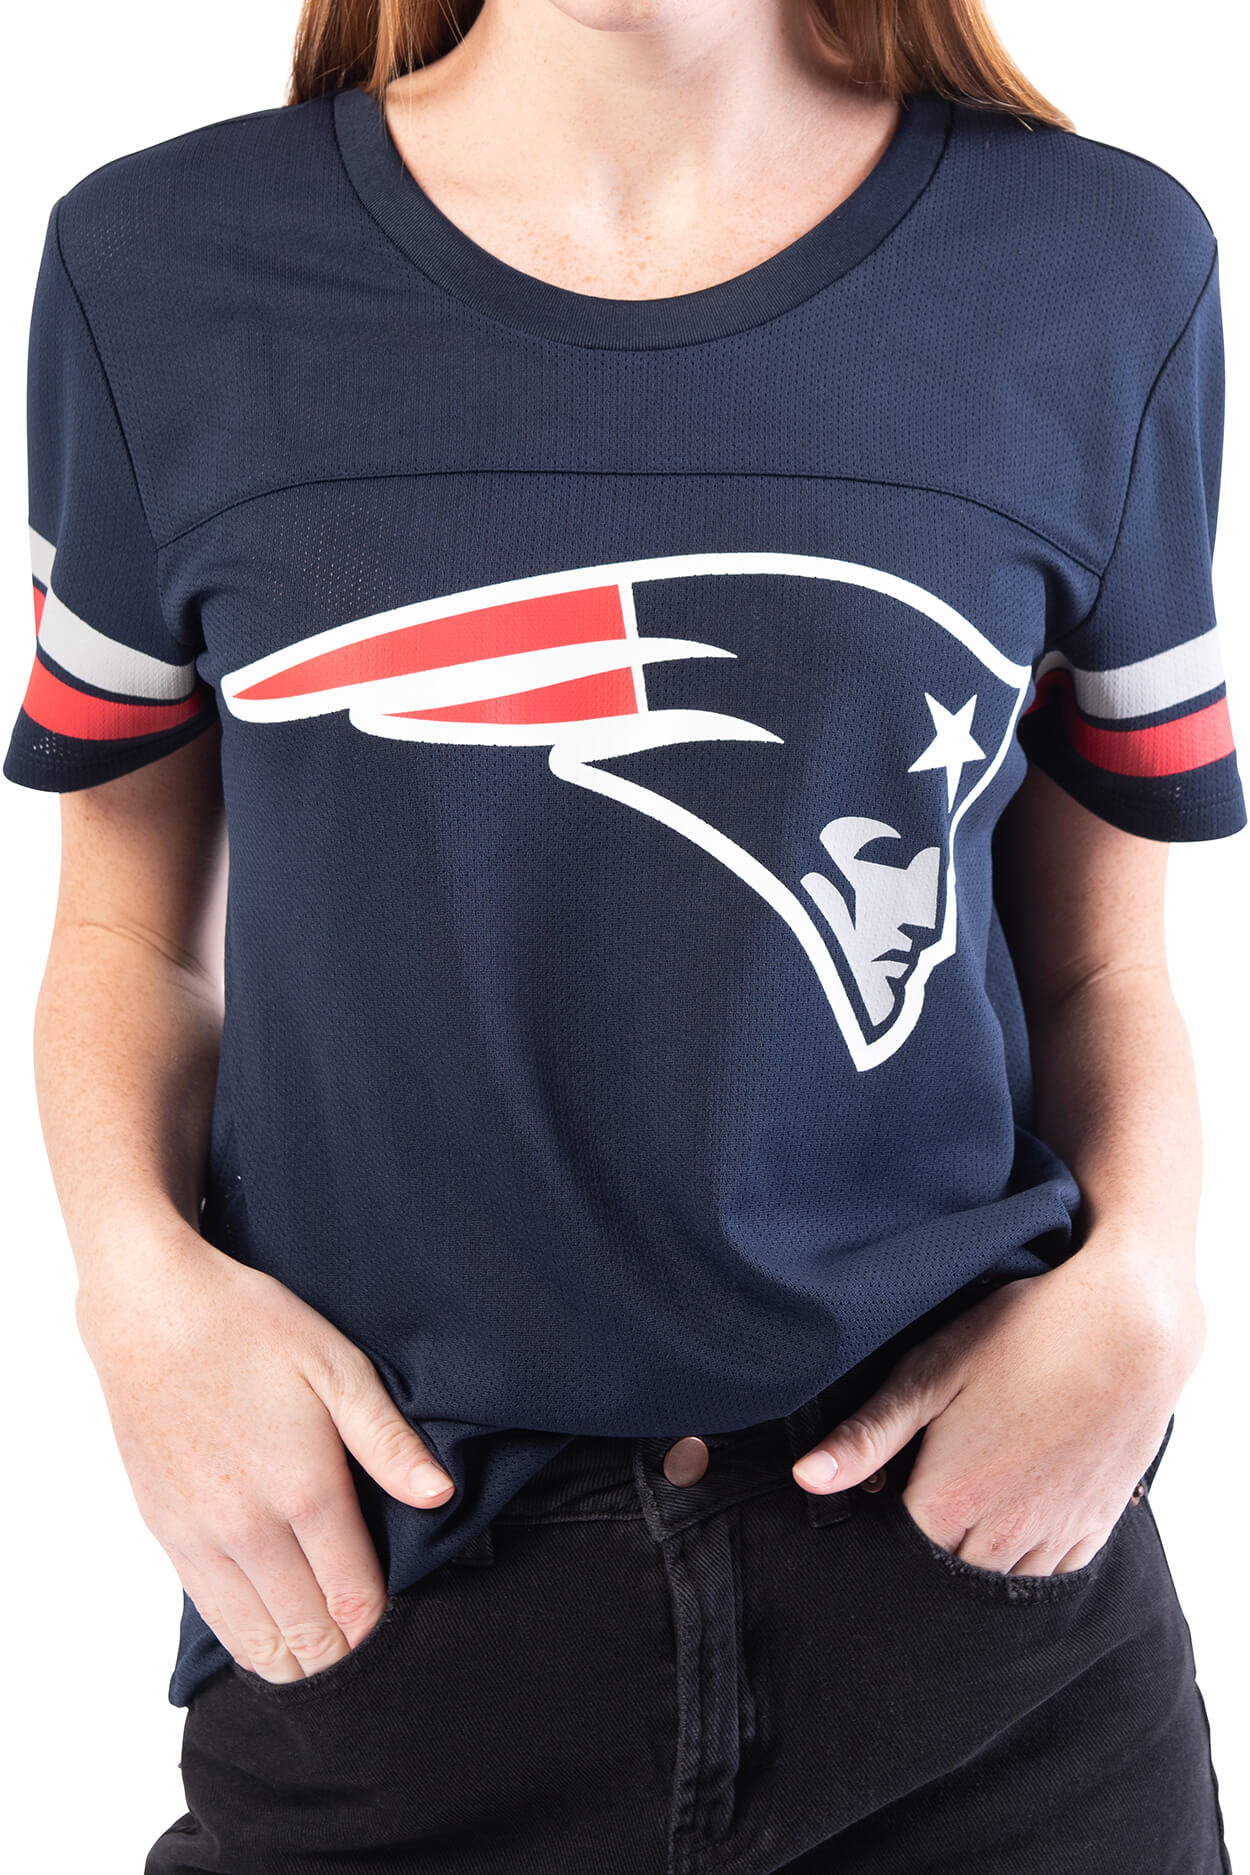 NFL New England Patriots Women's Varsity Stripe Tee|New England Patriots